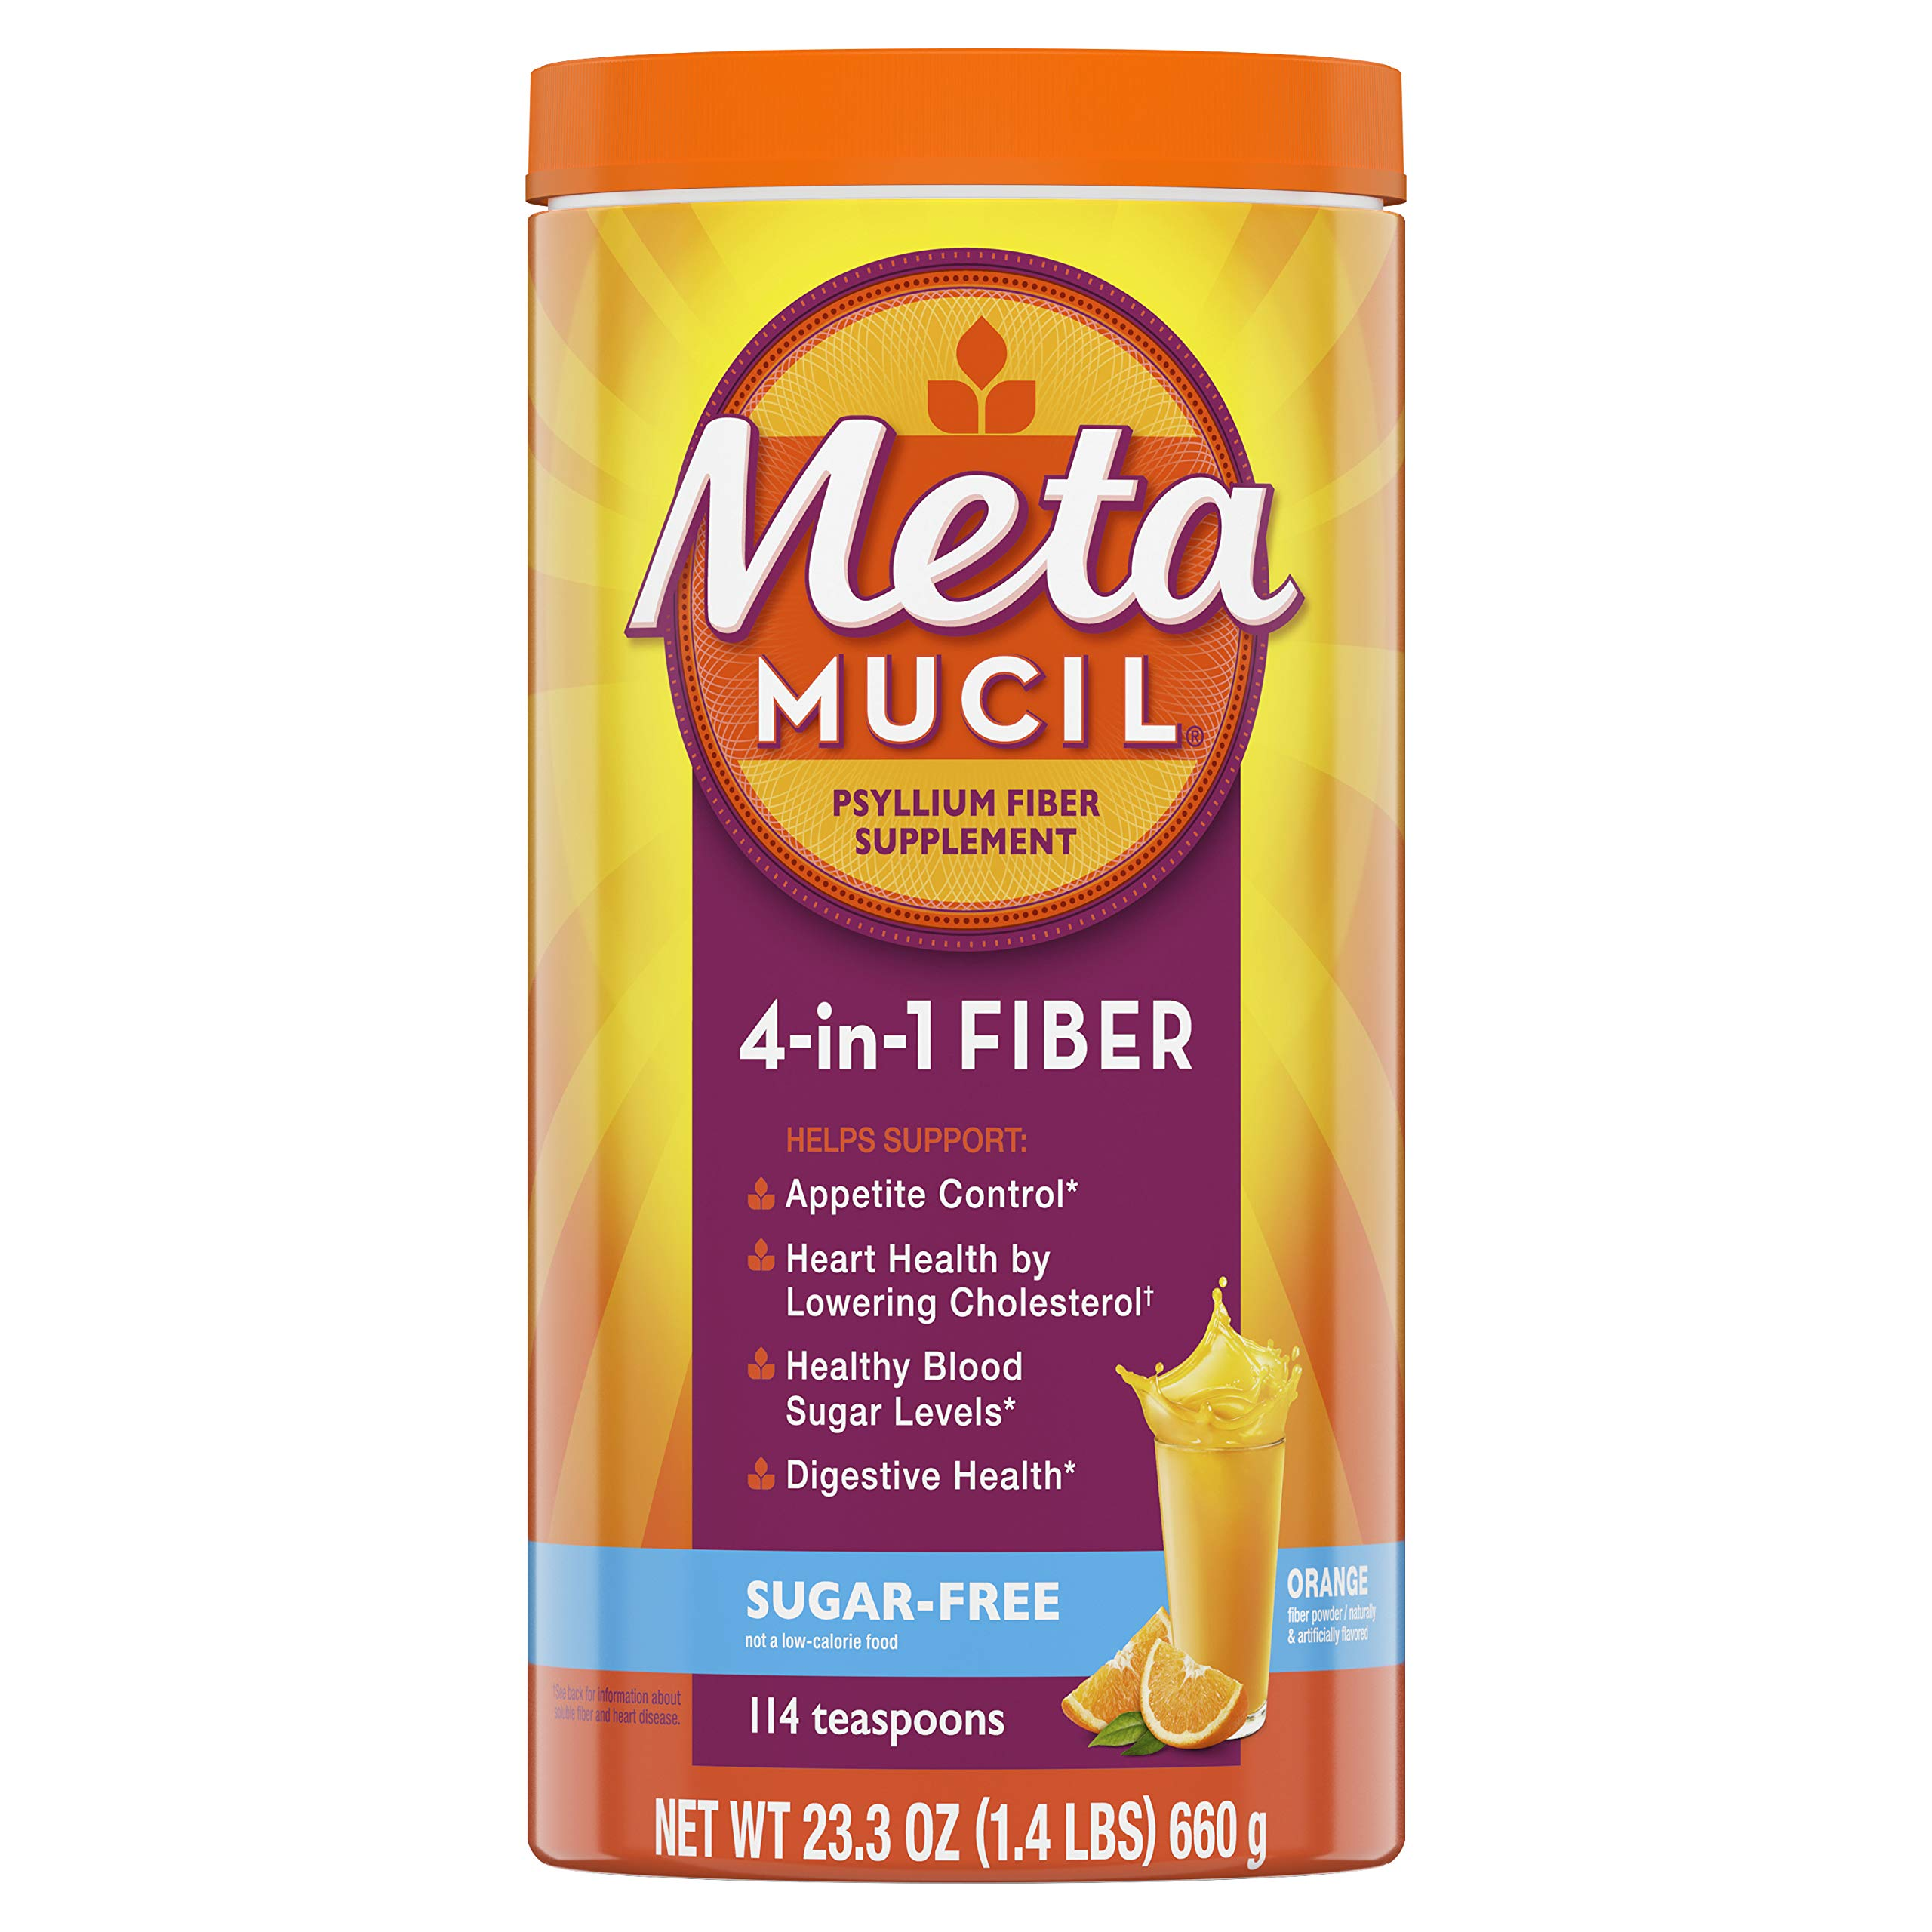 Metamucil Fiber, 4-in-1 Psyllium Fiber Supplement, Sugar-Free Powder, Orange Smooth Flavored Drink, 114 Servings (Packaging May Vary) by Metamucil